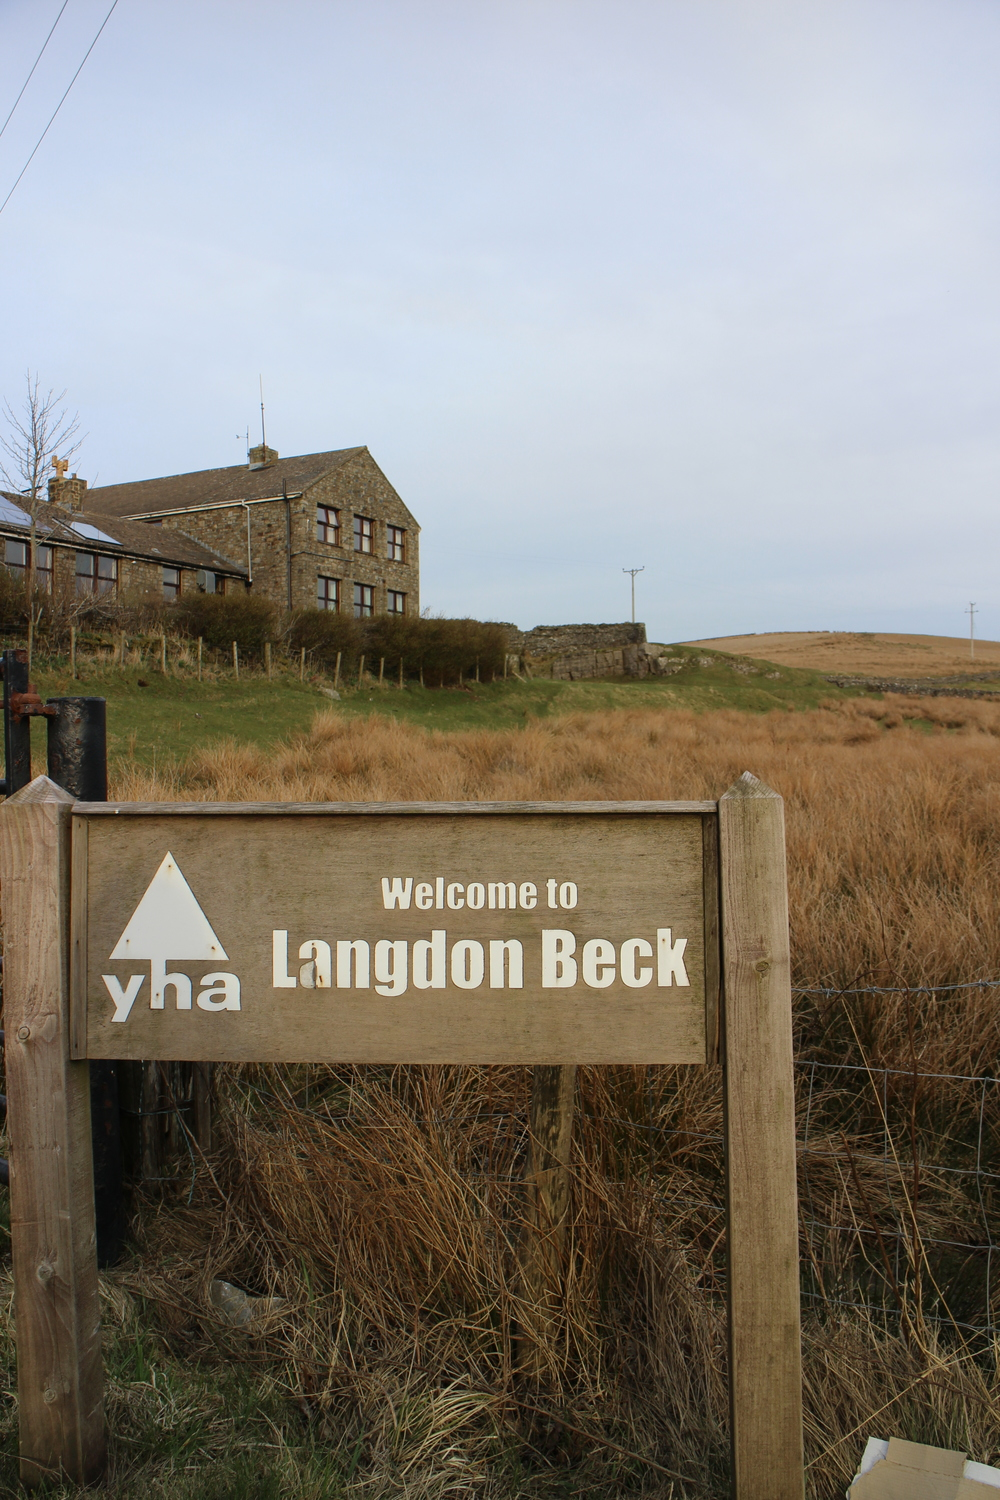 Langdon Beck Youth Hostel also turns 50 this year